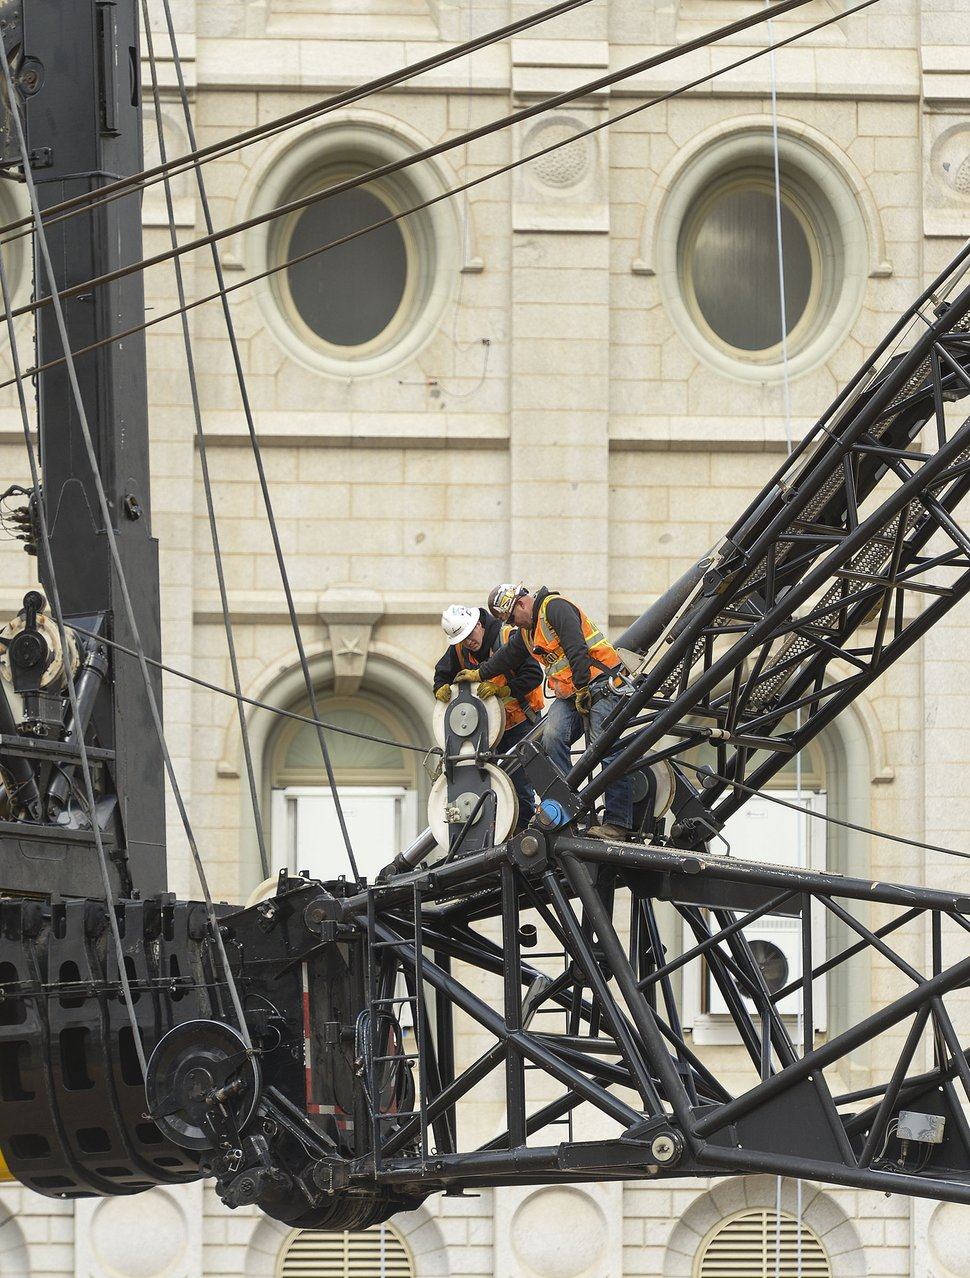 (Leah Hogsten | The Salt Lake Tribune) Crews rig a giant crane on the grounds of The Church of Jesus Christ of Latter-day Saints' Salt Lake Temple, April 2, 2020. The temple, closed in December for seismic upgrades, sustained minor damage during the March 18, 2020, earthquake. The trumpet on the Angel Moroni statue fell off, and there is minor displacement of some of the temple's smaller spire stones.